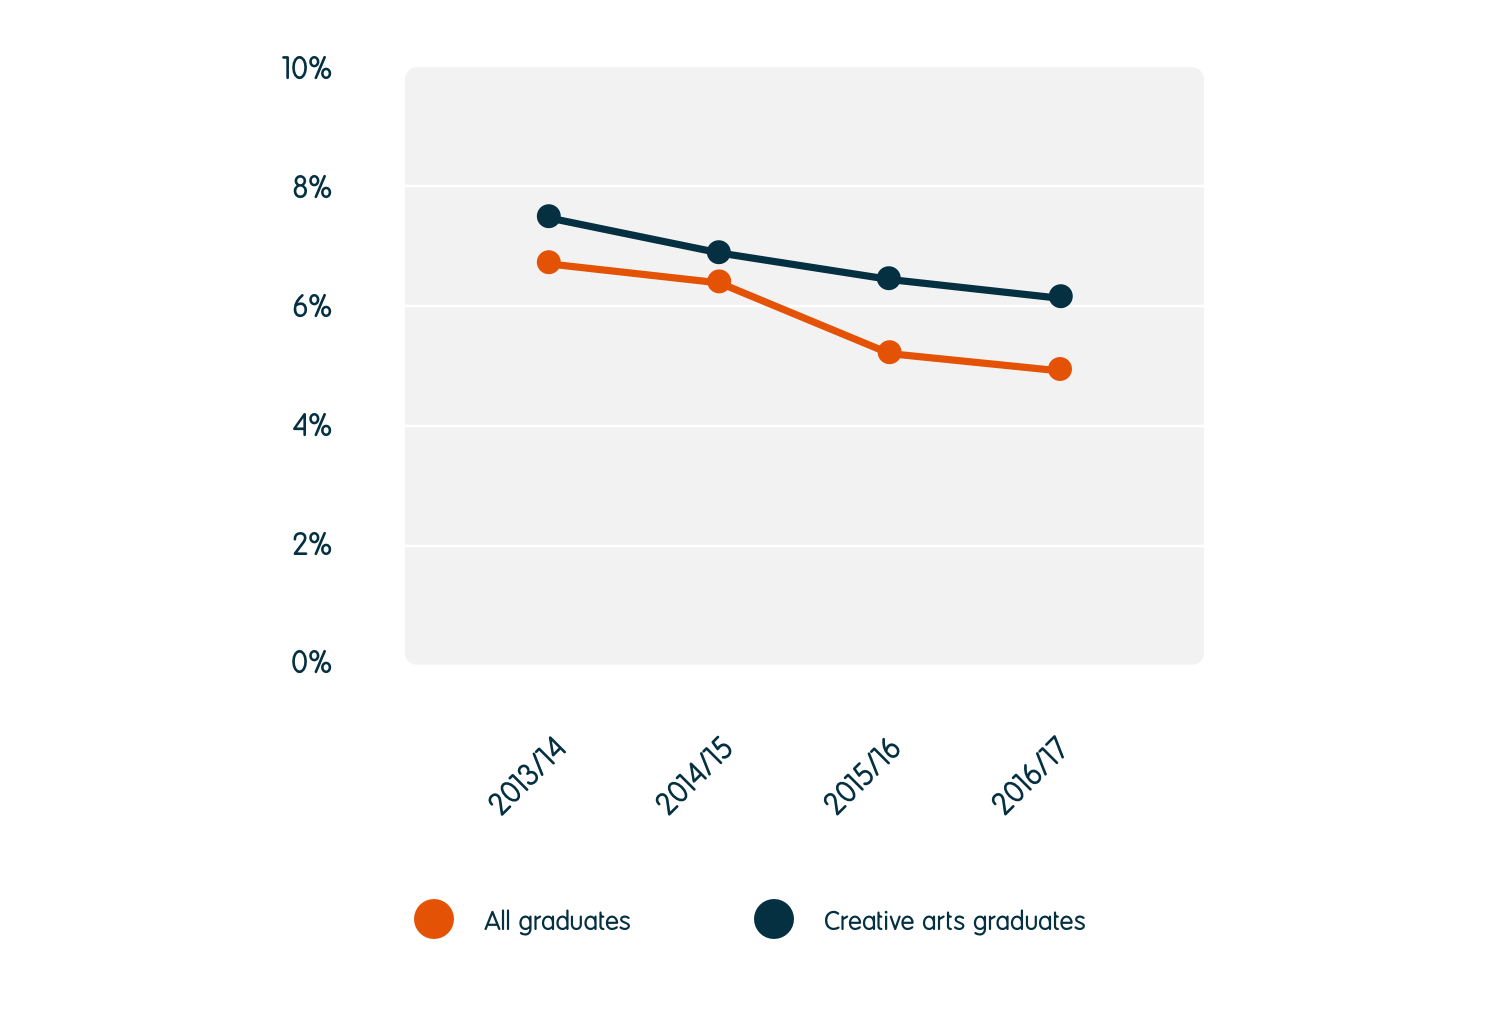 The unemployment rate for creative arts graduates reduced from 7.7% in 2013/14 to 6.1% in 2016/17. This is higher than the 5.1% unemployment rate for all graduates.